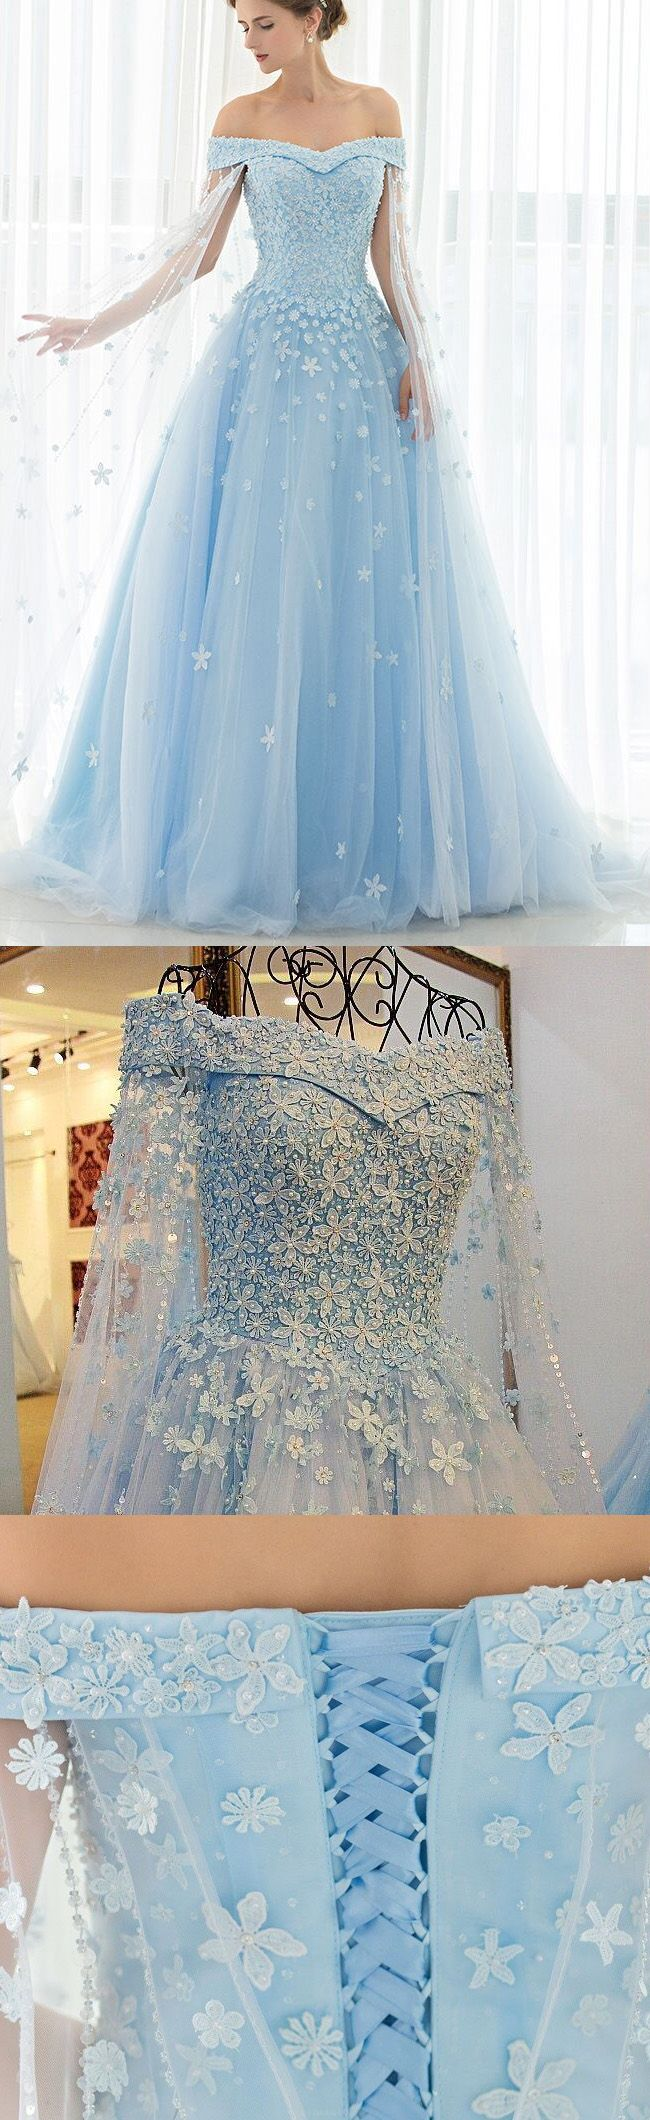 Blue Prom Dresses, Long Prom Dresses, Lace Prom Dresses, Light Blue Prom Dresses, Off The Shoulder Prom Dresses, Prom Dresses Blue, Prom Dresses Long, Prom dresses Sale, Light Blue dresses, Off The Shoulder dresses, Off Shoulder dresses, Lace Up Evening Dresses, Applique Prom Dresses, Sweep Train Prom Dresses, Off-the-Shoulder Prom Dresses